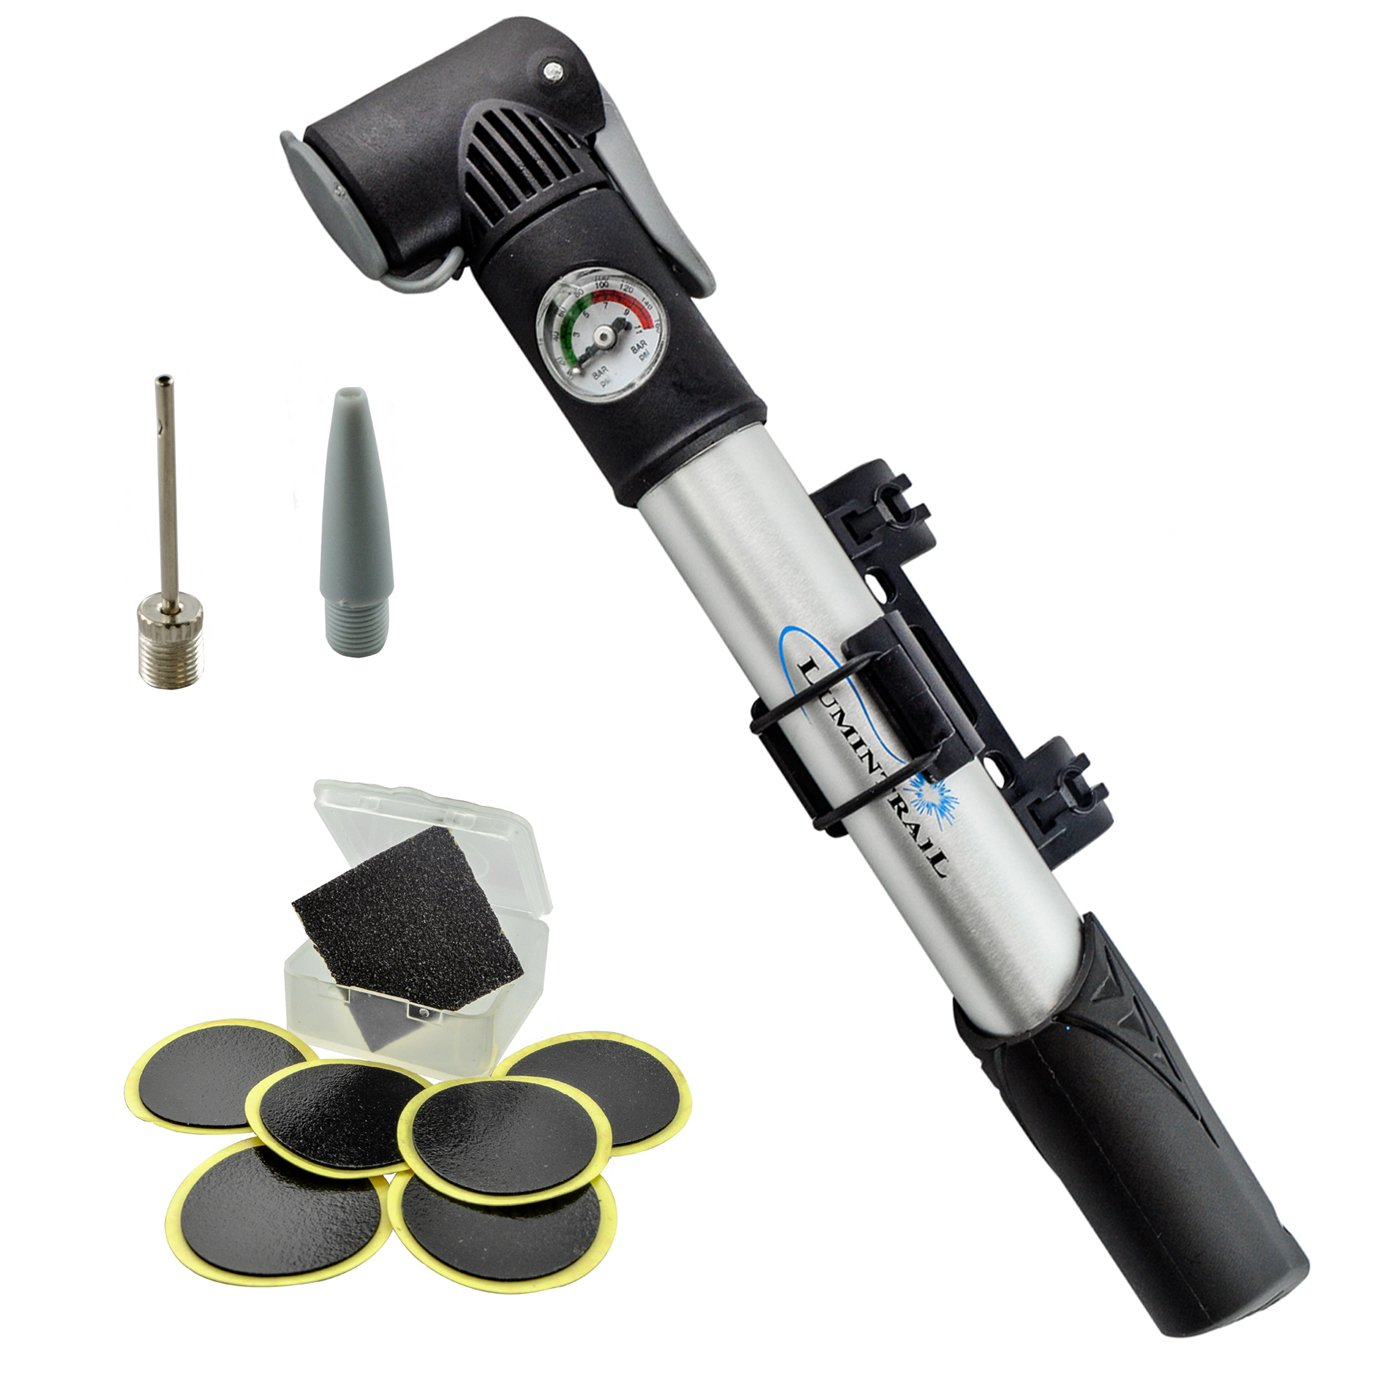 Lumintrail Mini Bike Pump with Gauge and Glueless Puncture Repair Kit w/Presta & Schrader Dual Head, Frame Mount